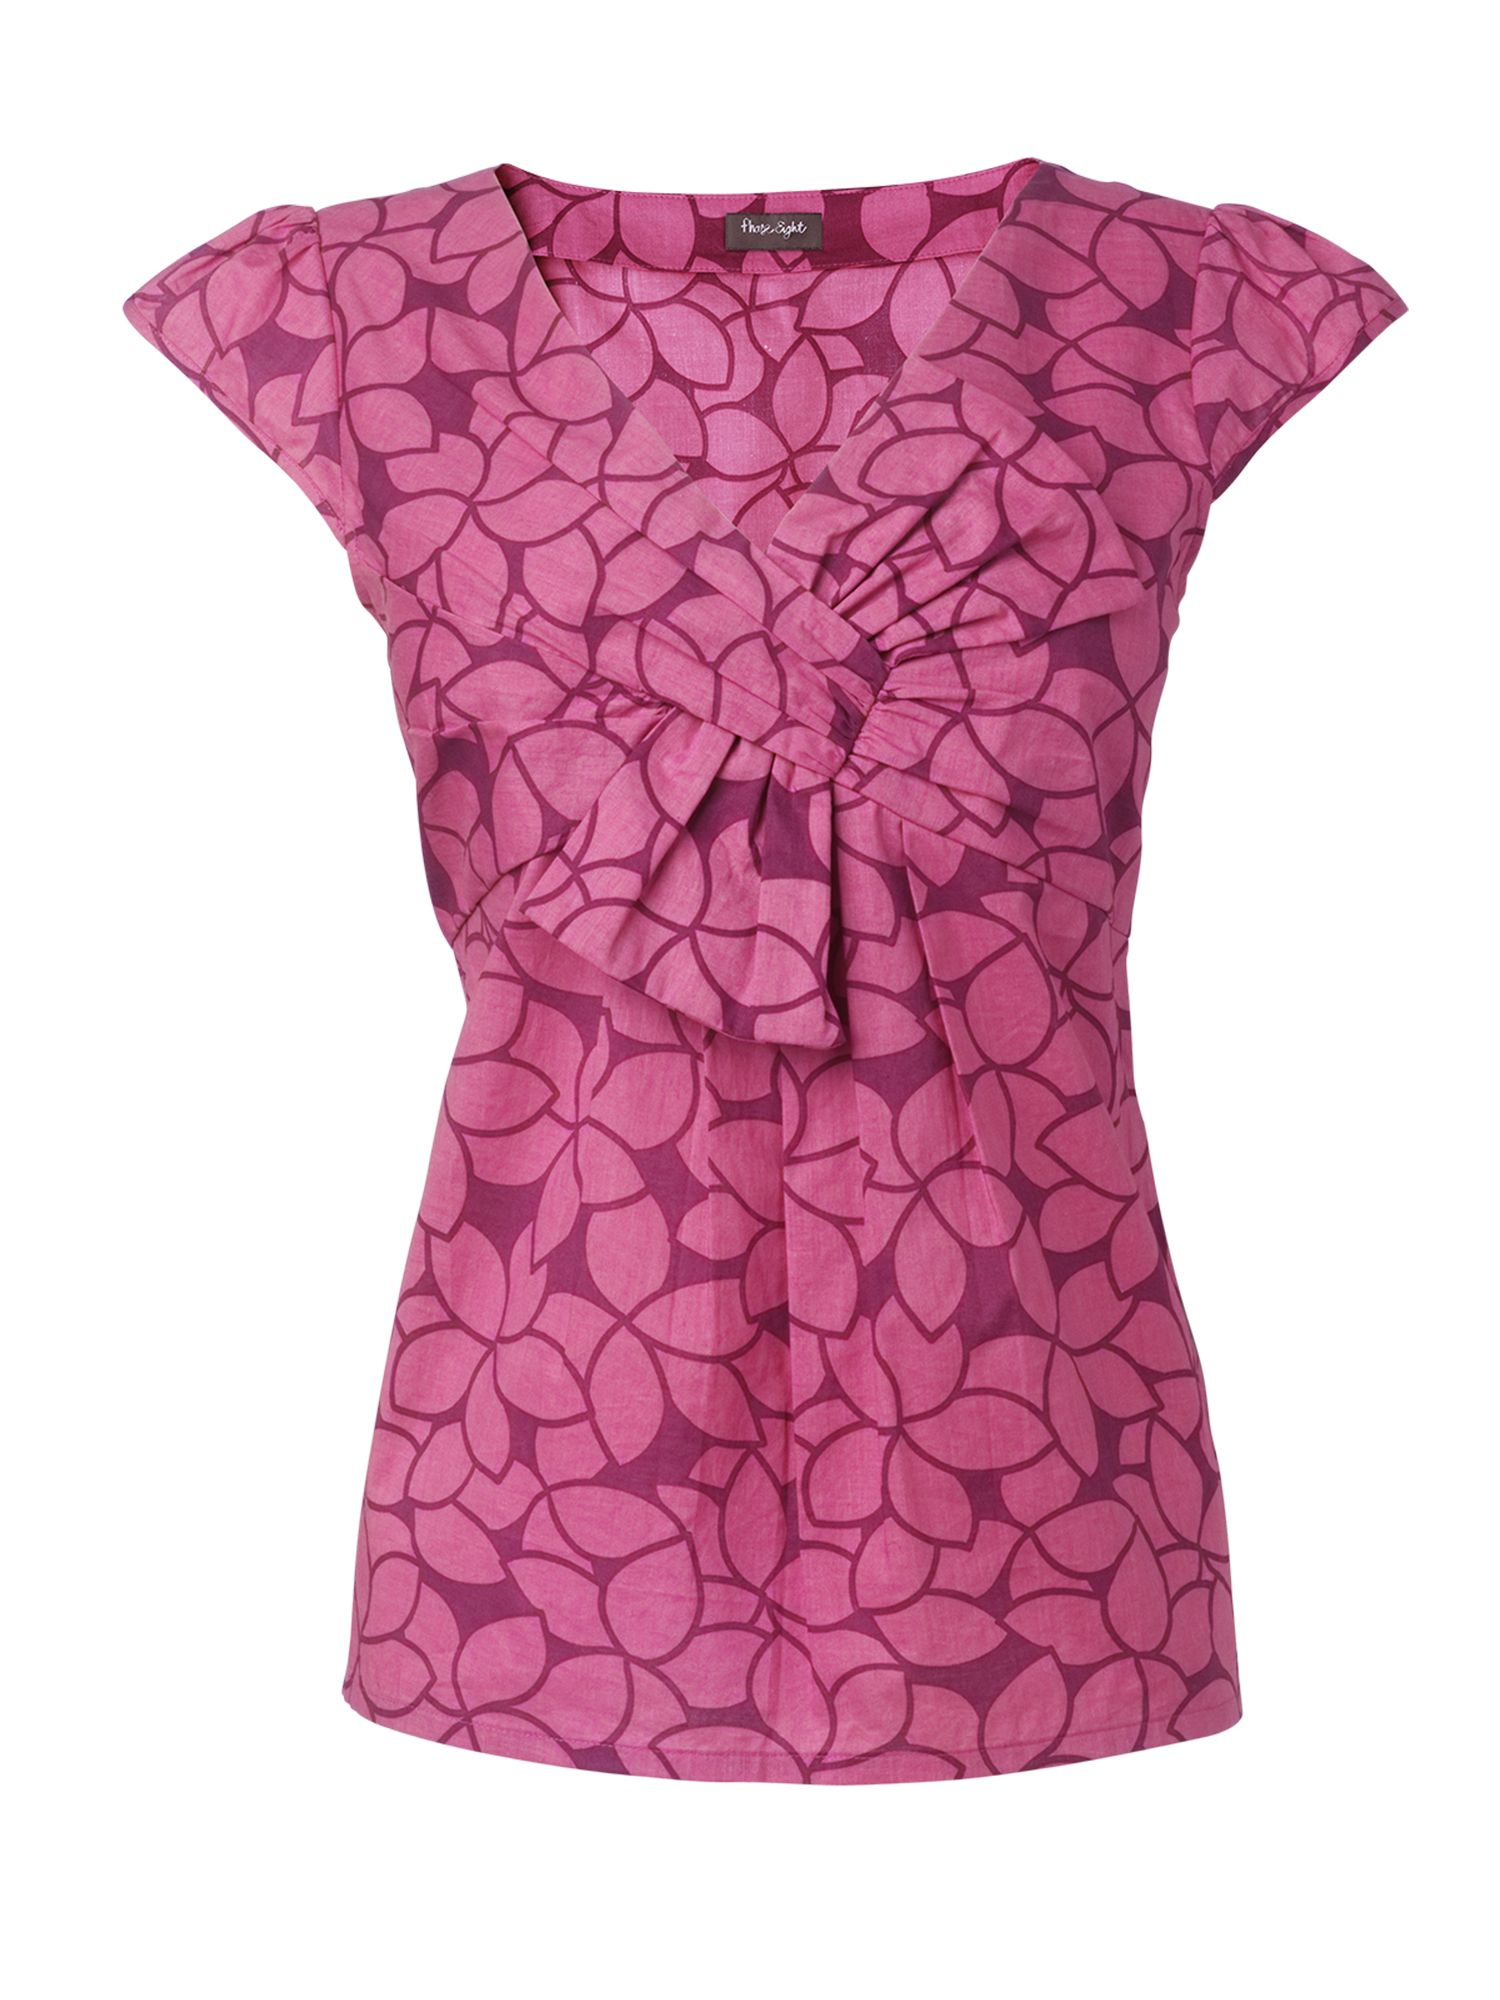 Phase Eight Waterlily blouse - Rose 16,16,18,18 product image